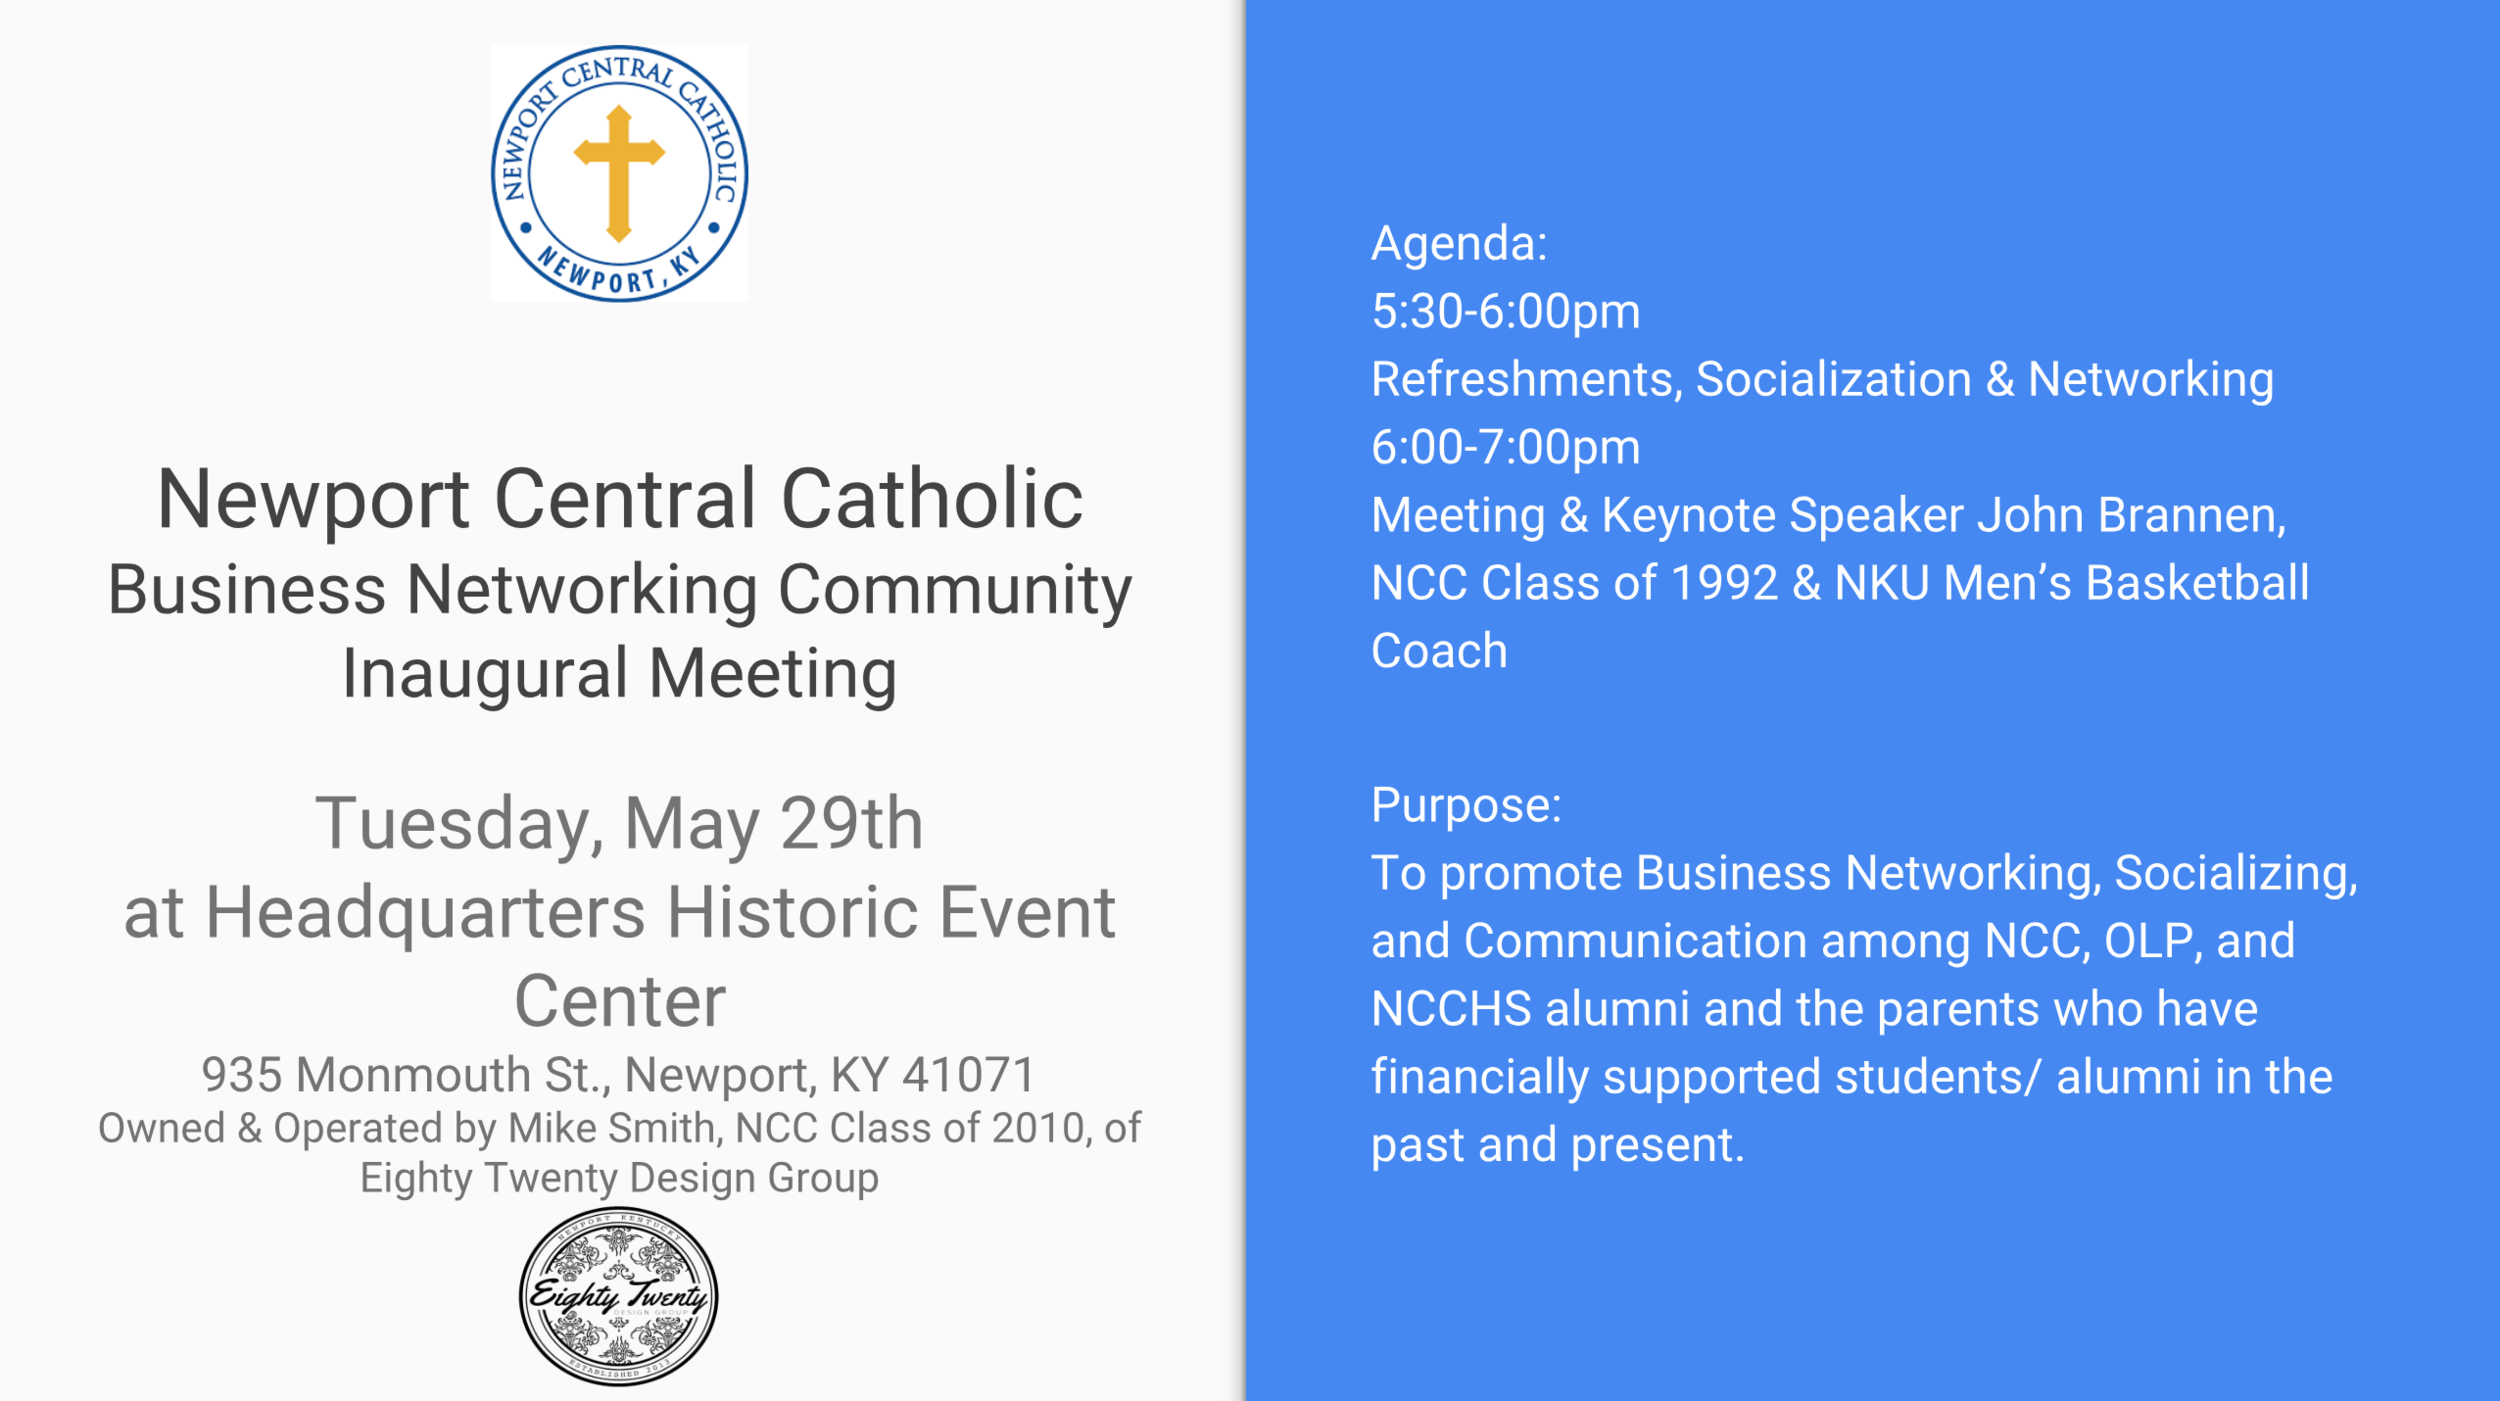 The Business Networking Group of NCC hopes to see you there!